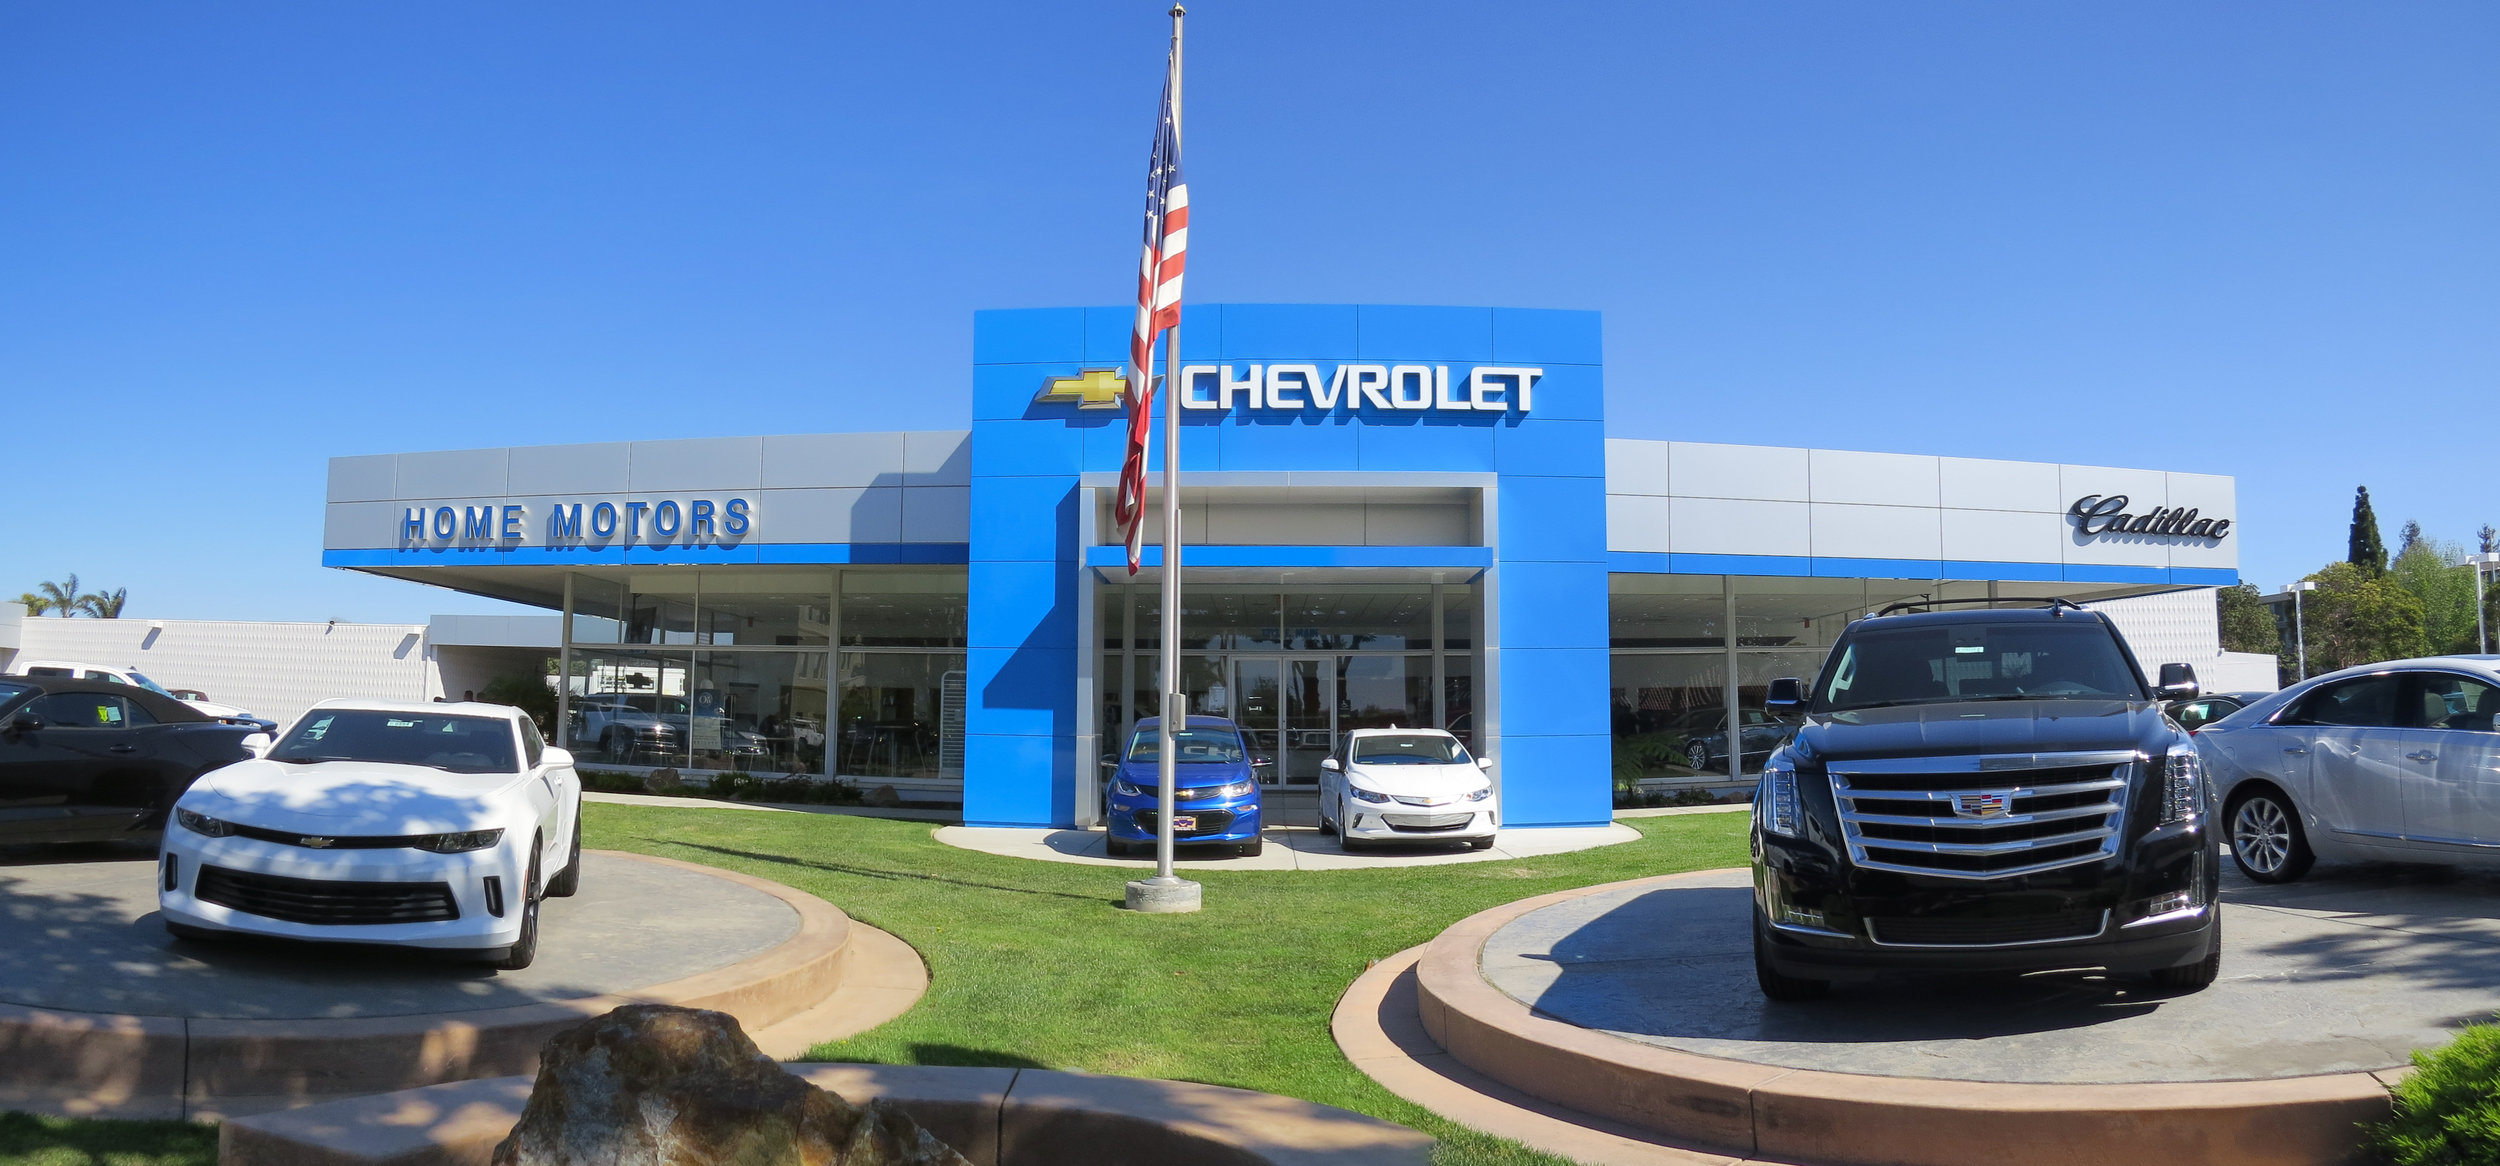 Home Motors Chevrolet